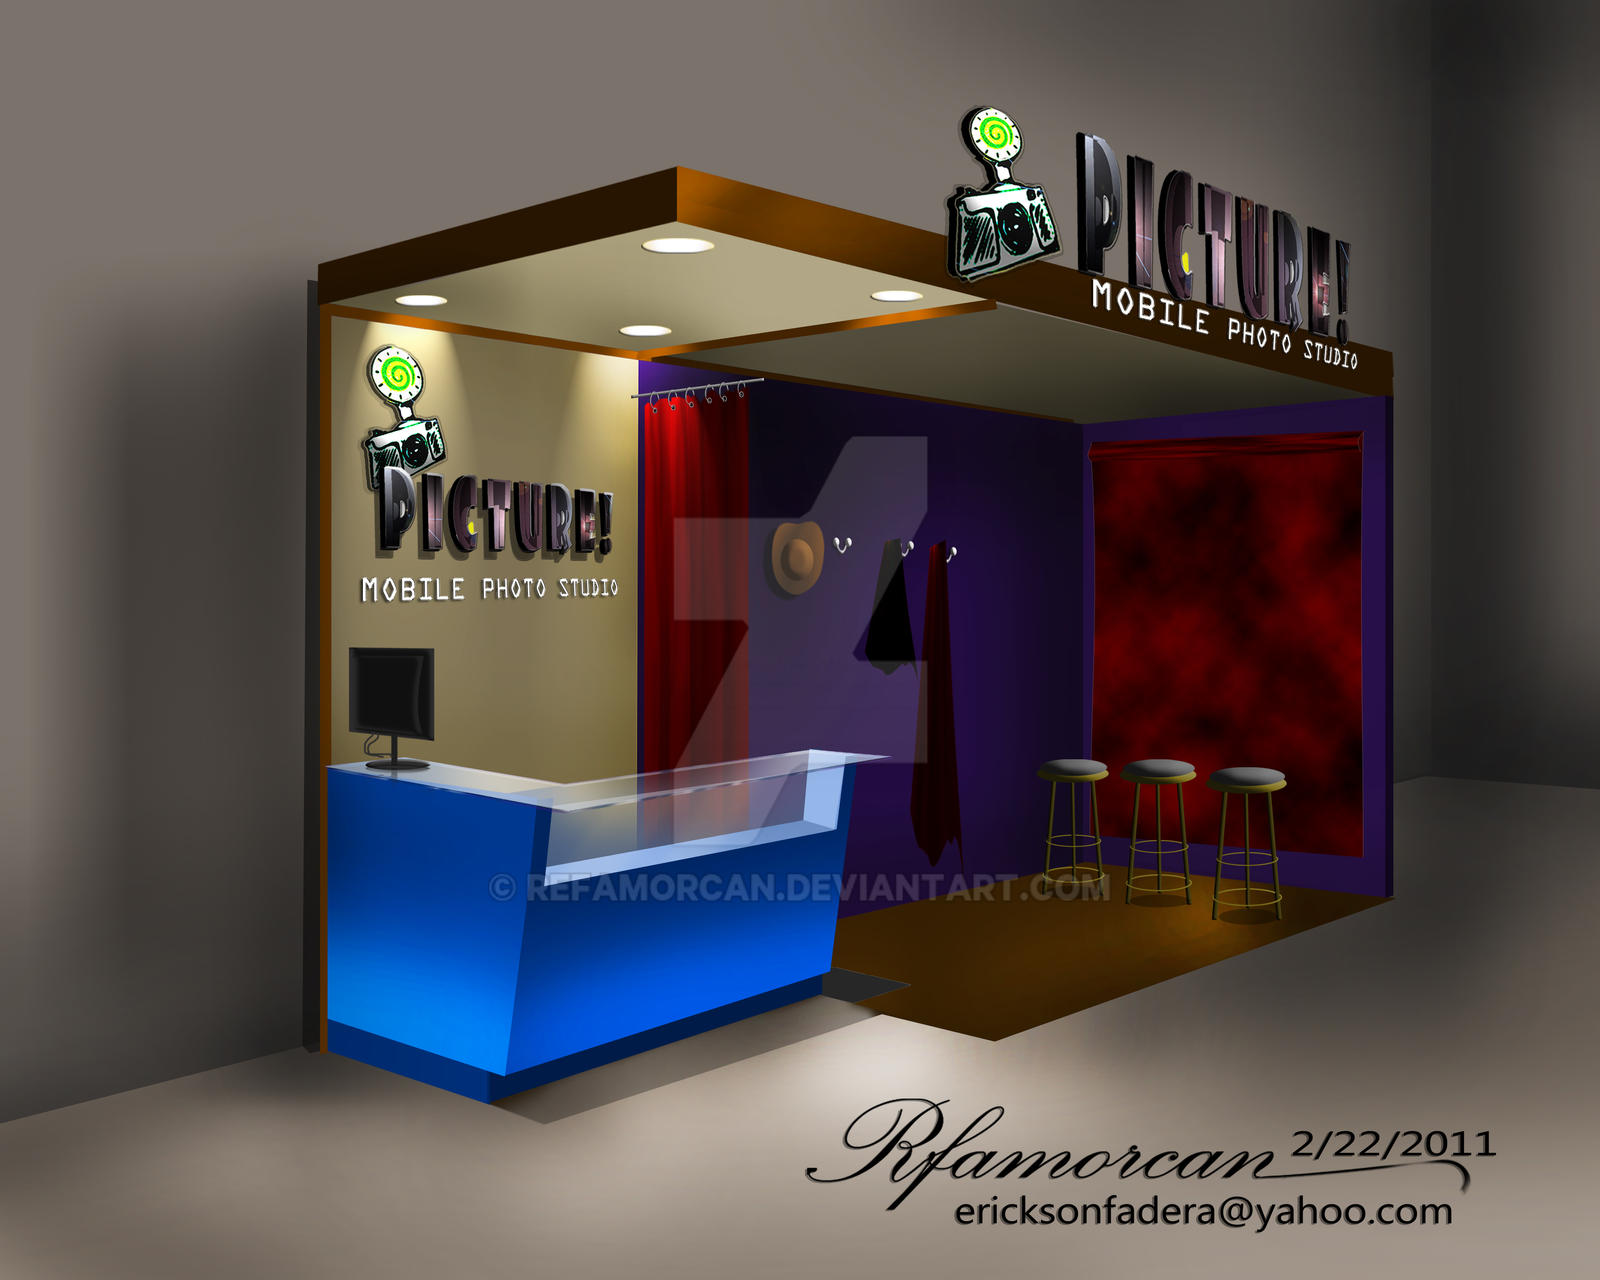 Photo Booth Design Interior By Refamorcan On Deviantart